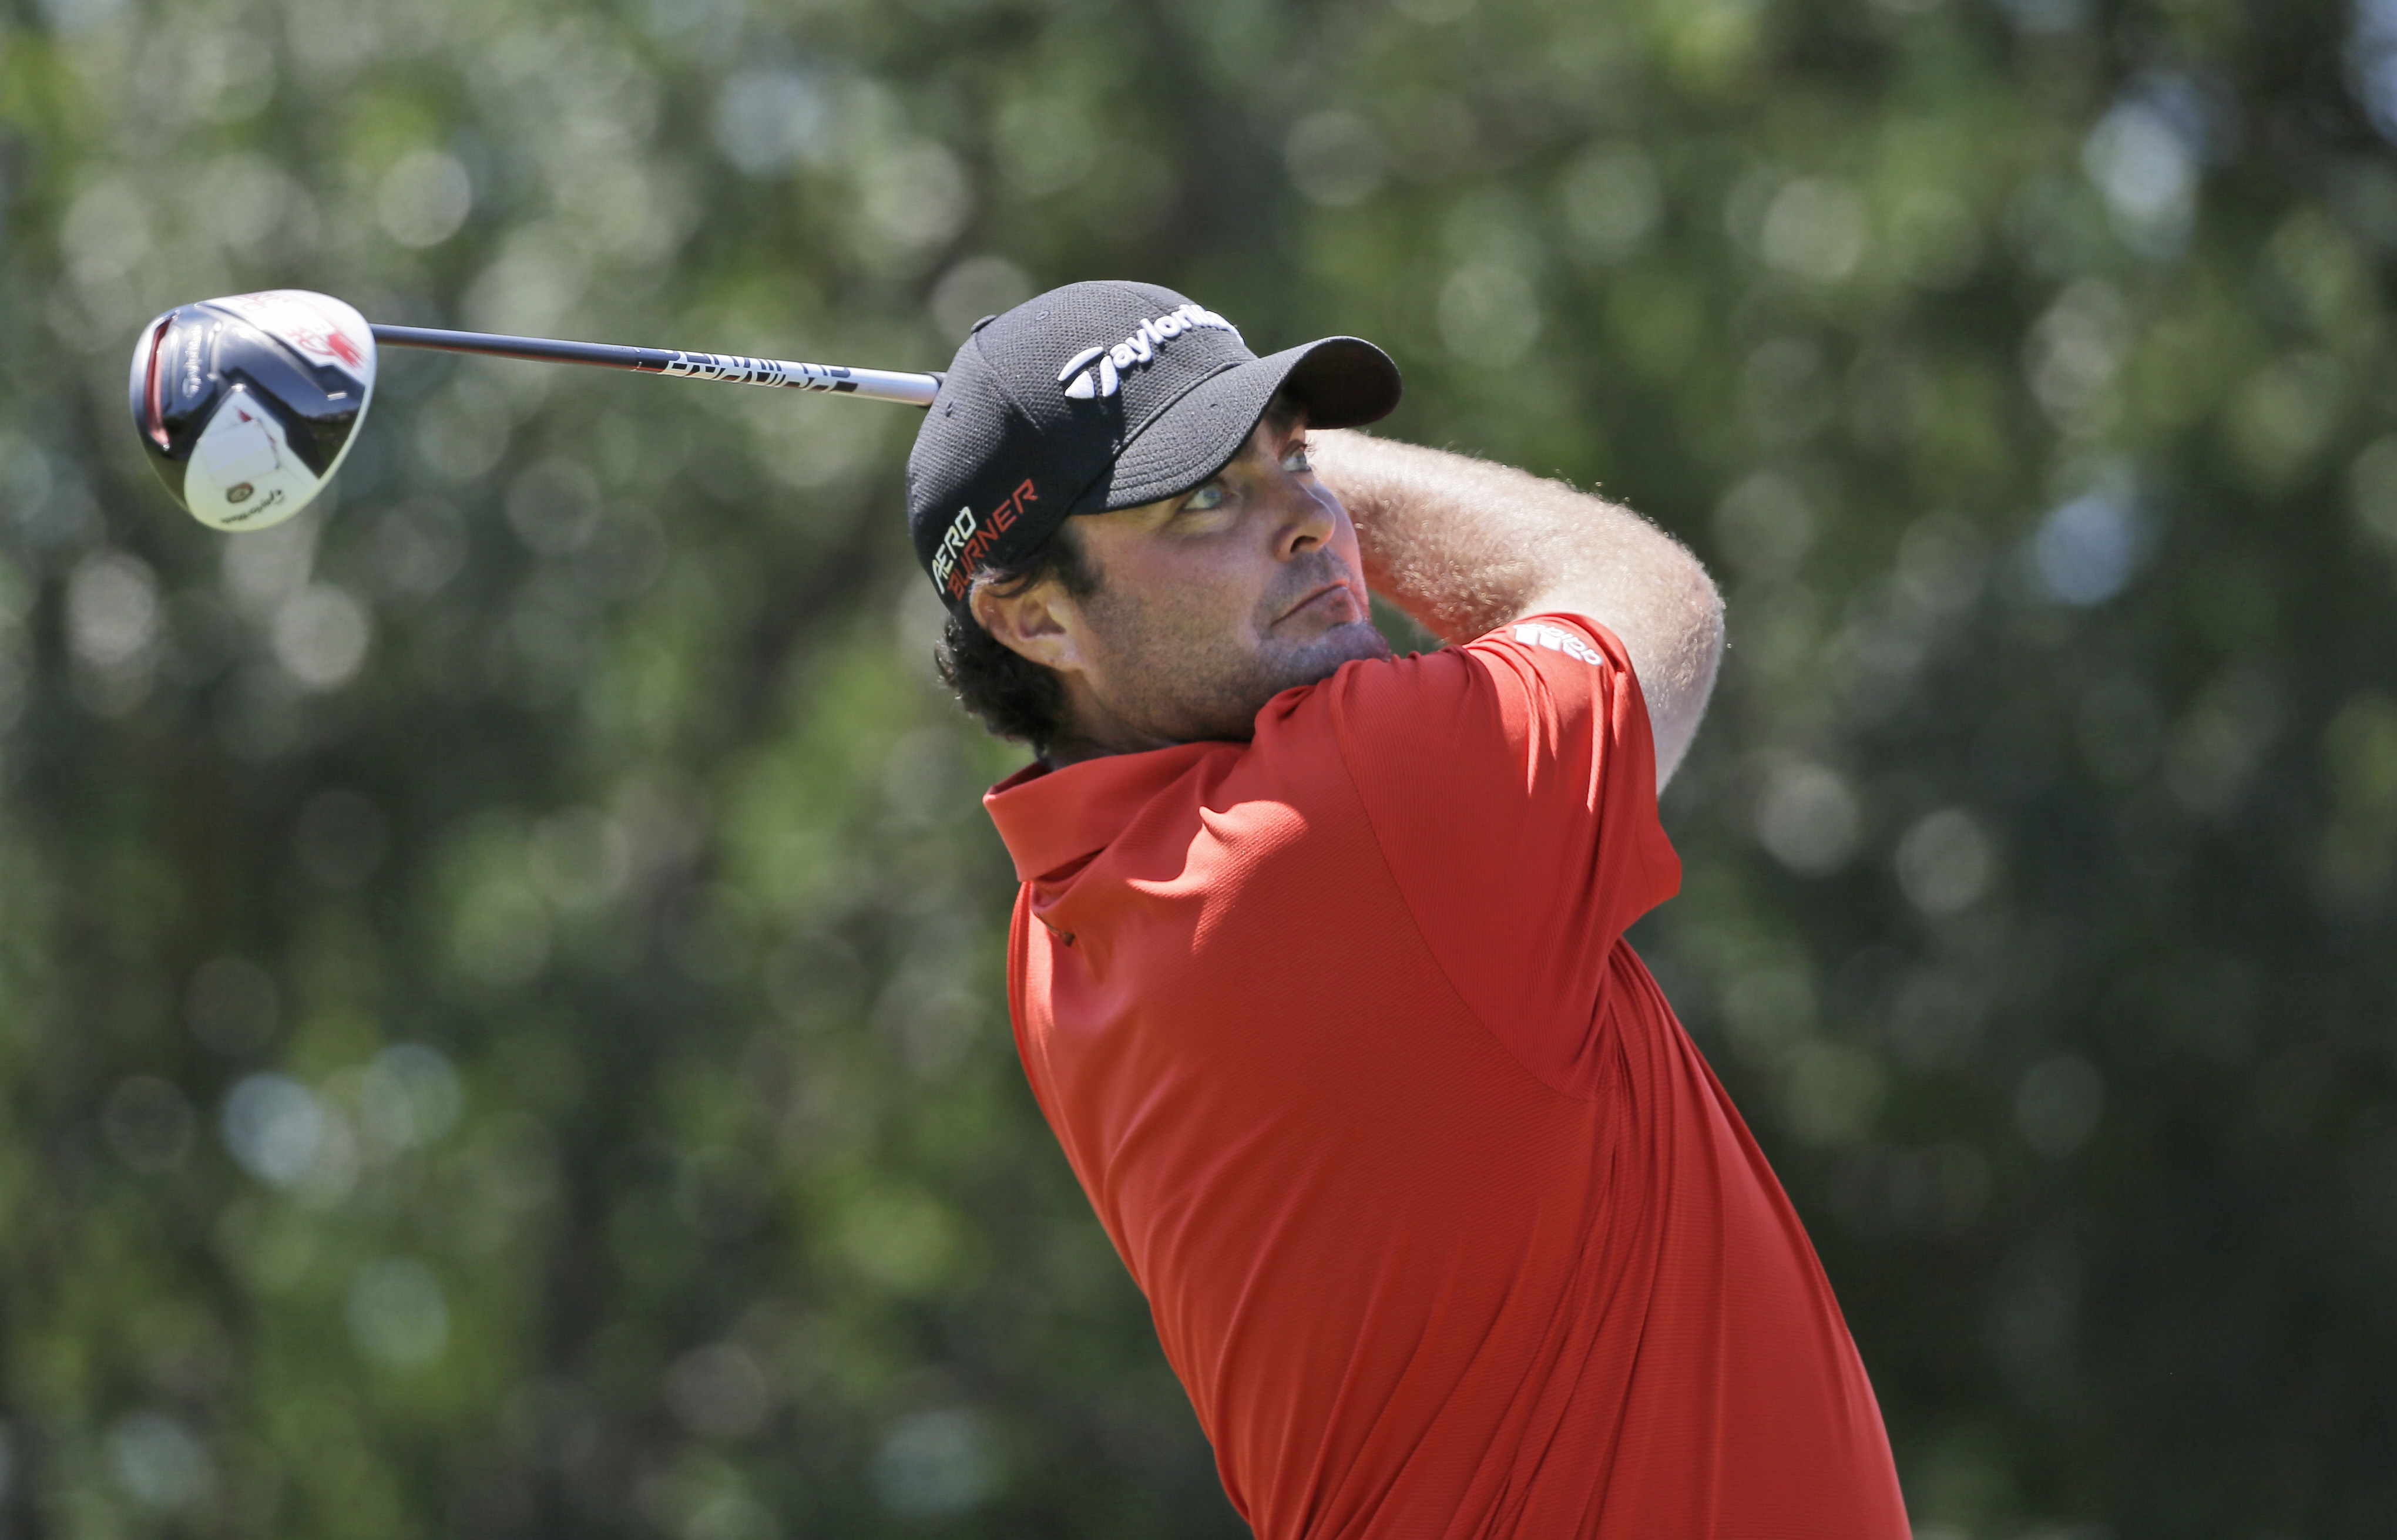 Steven Bowditch watches his tee shot on the second hole during the final round of the Byron Nelson golf tournament, Sunday, May 31, 2015, in Irving, Texas. (AP Photo/LM Otero)